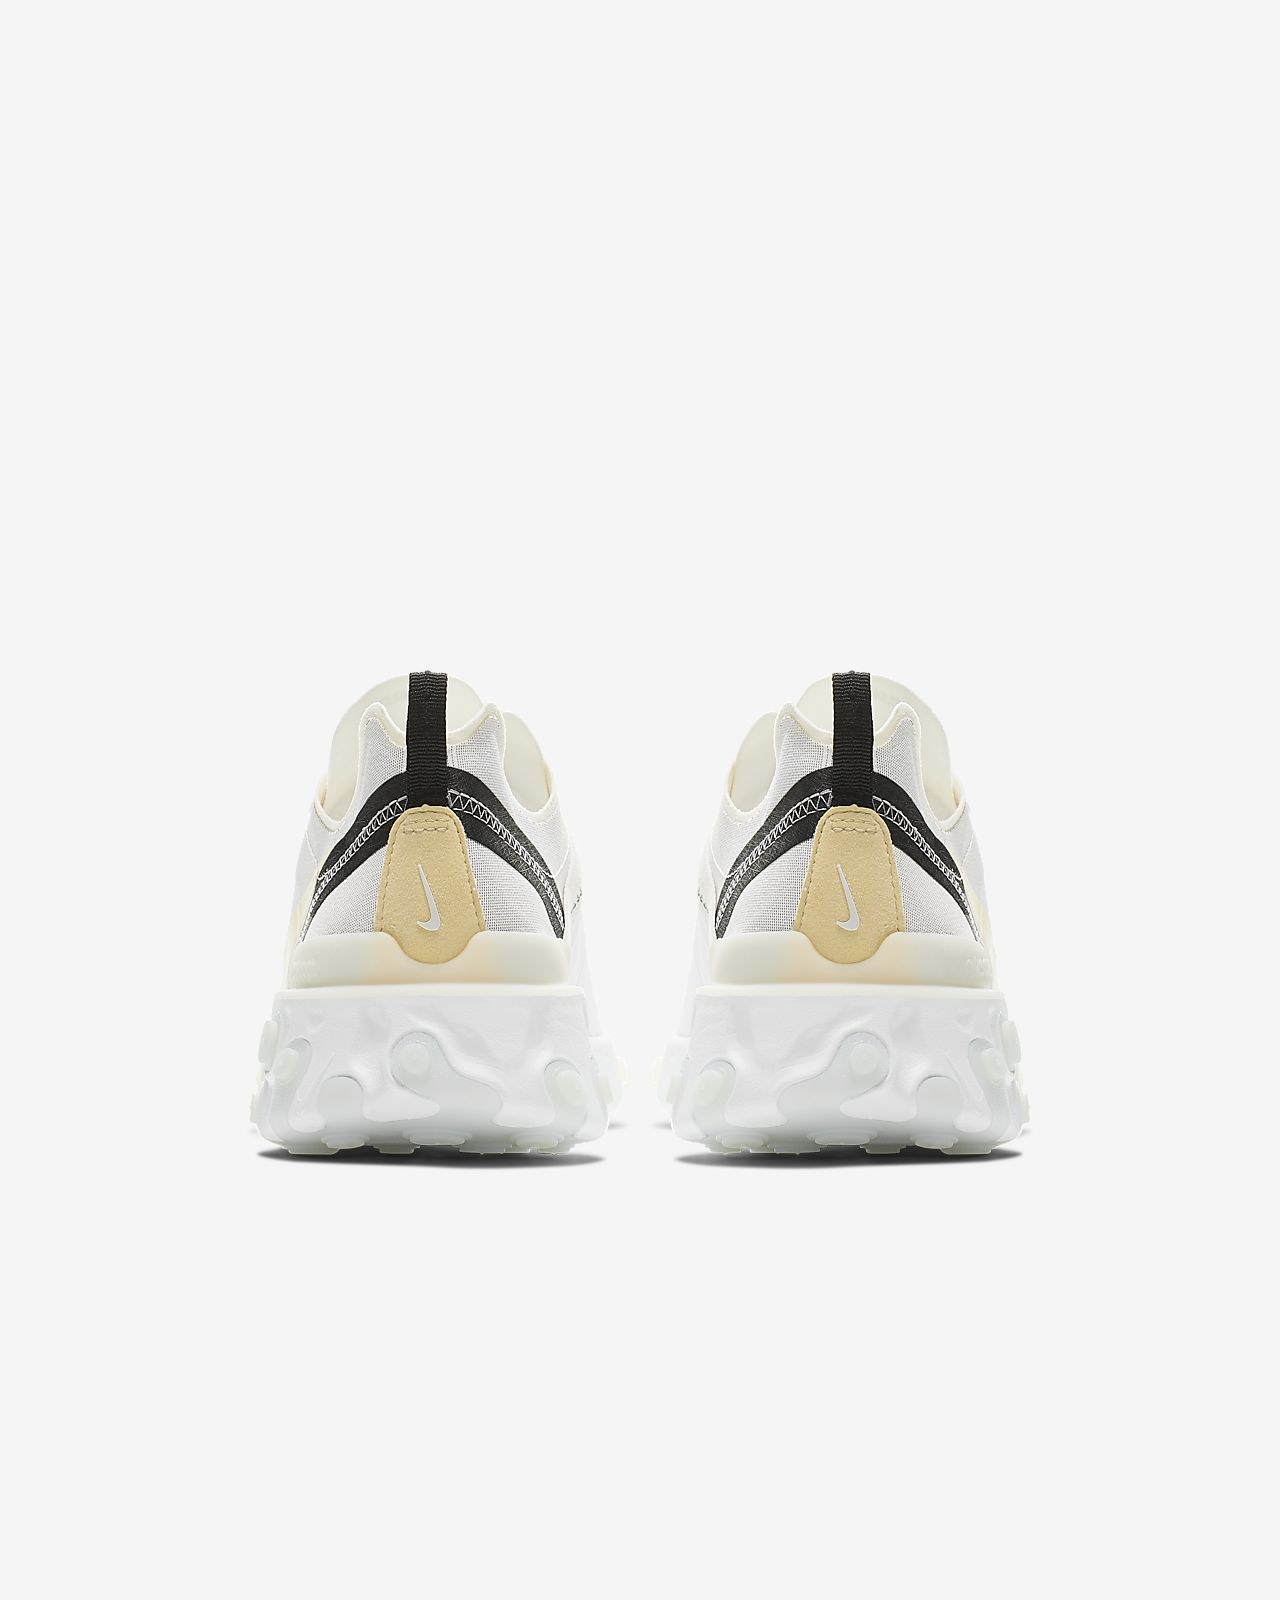 REACT 55 Sneaker low whitepale vanillablackpale ivory